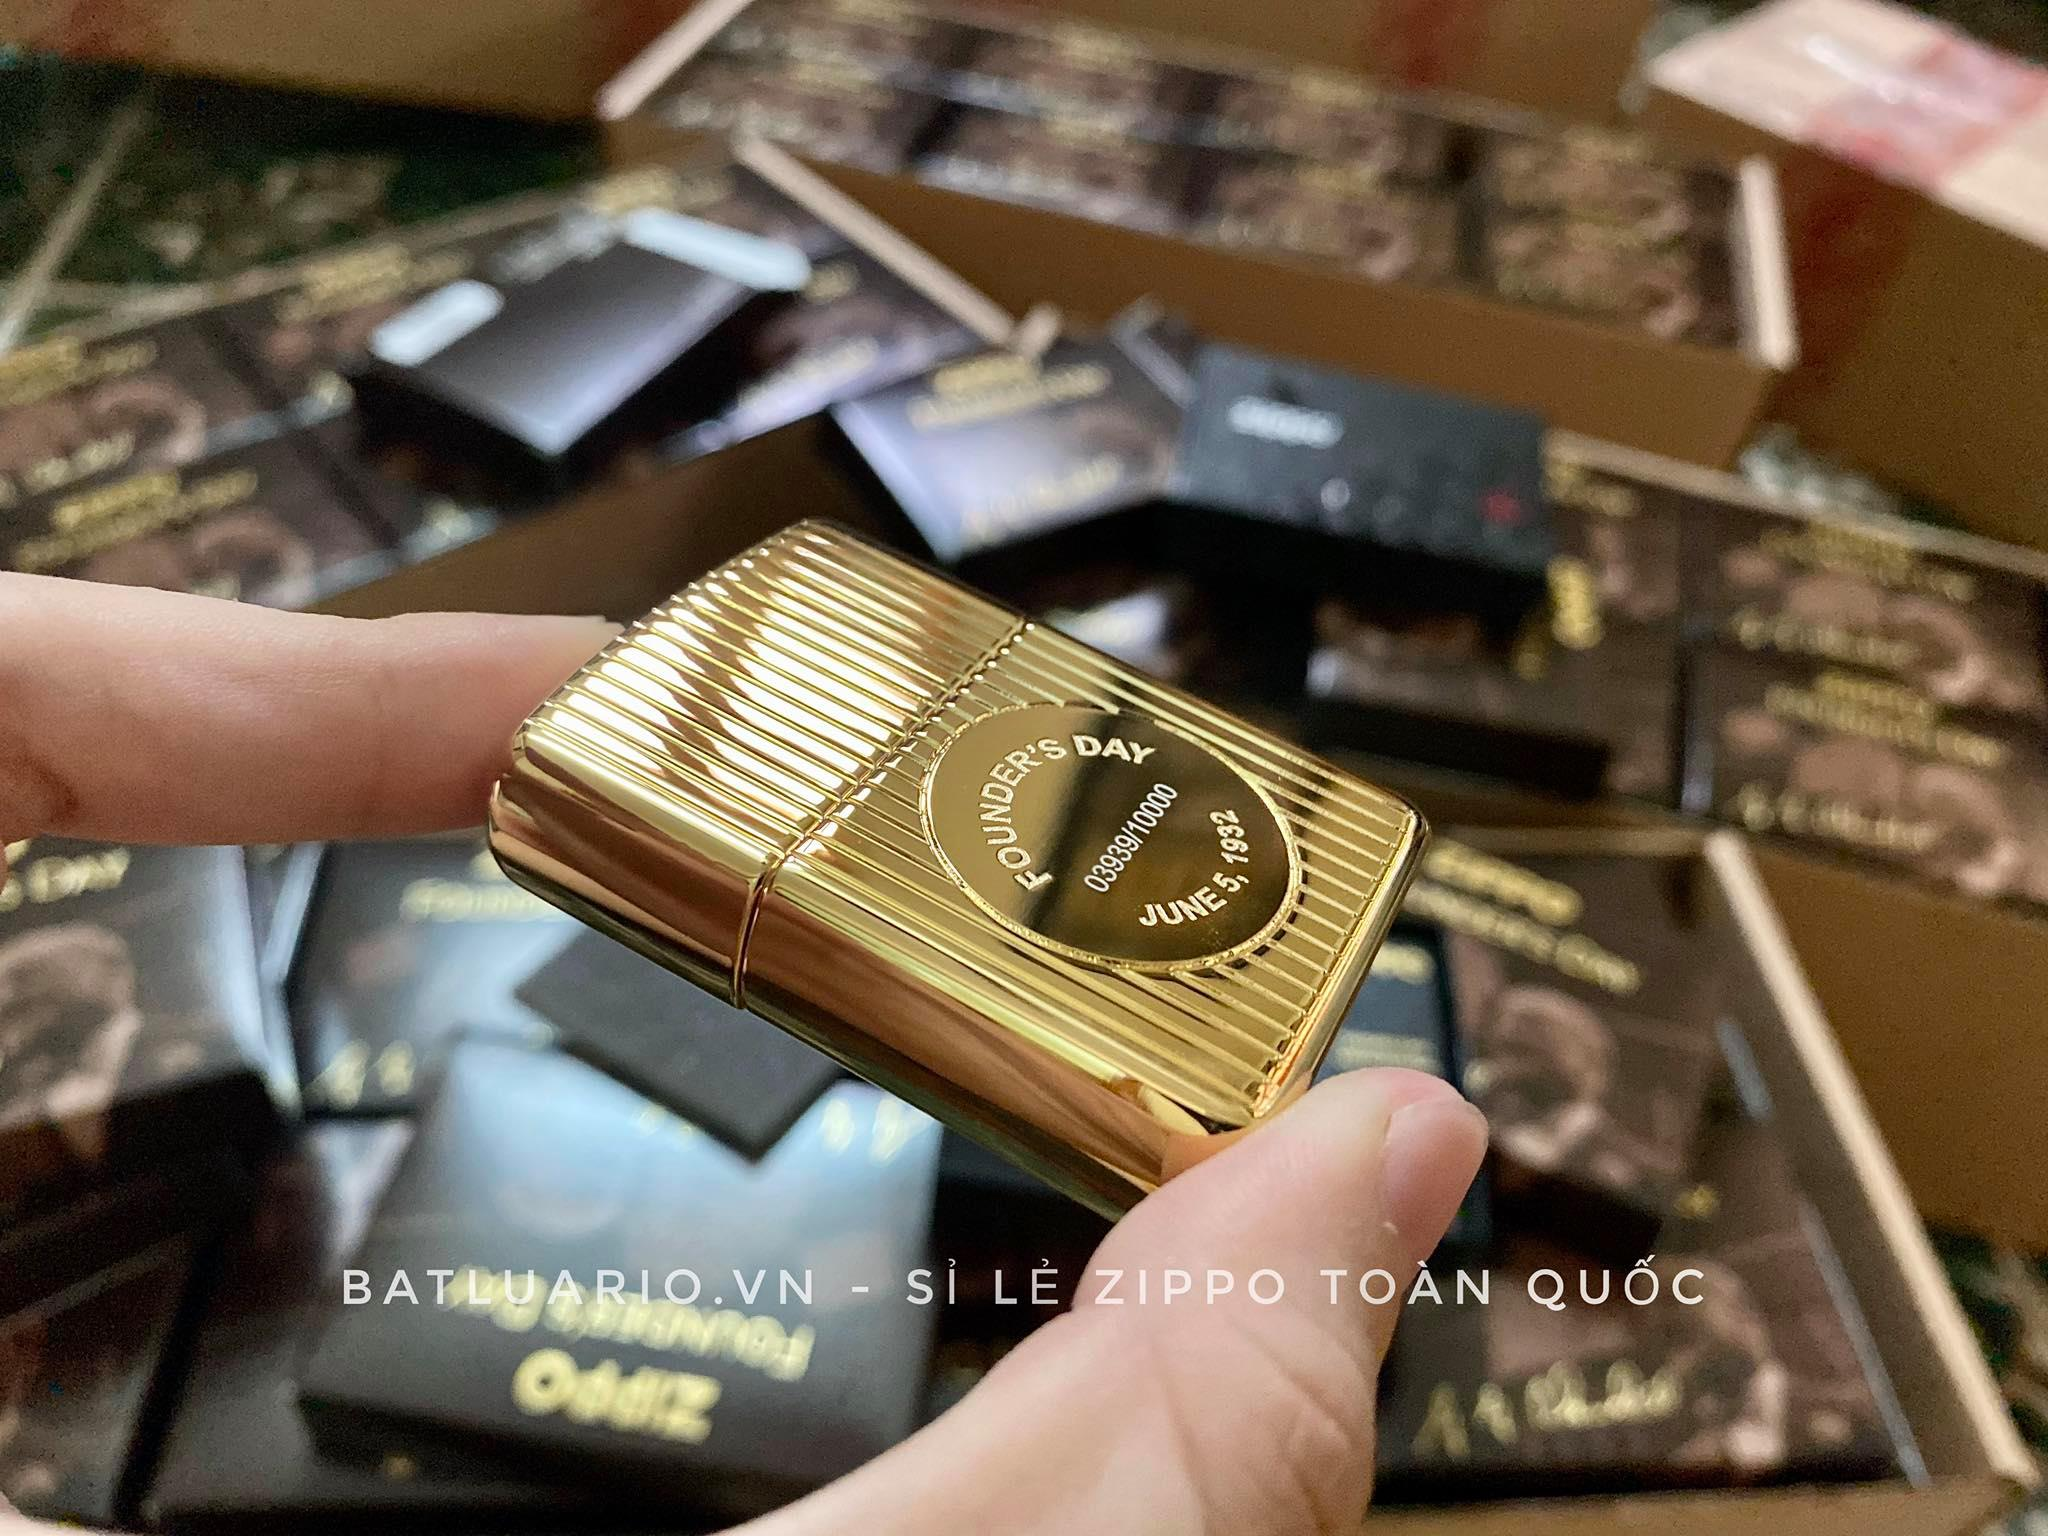 Zippo 49631 - Zippo Founder's Day 2021 Gold Plated Edition Collectible 38